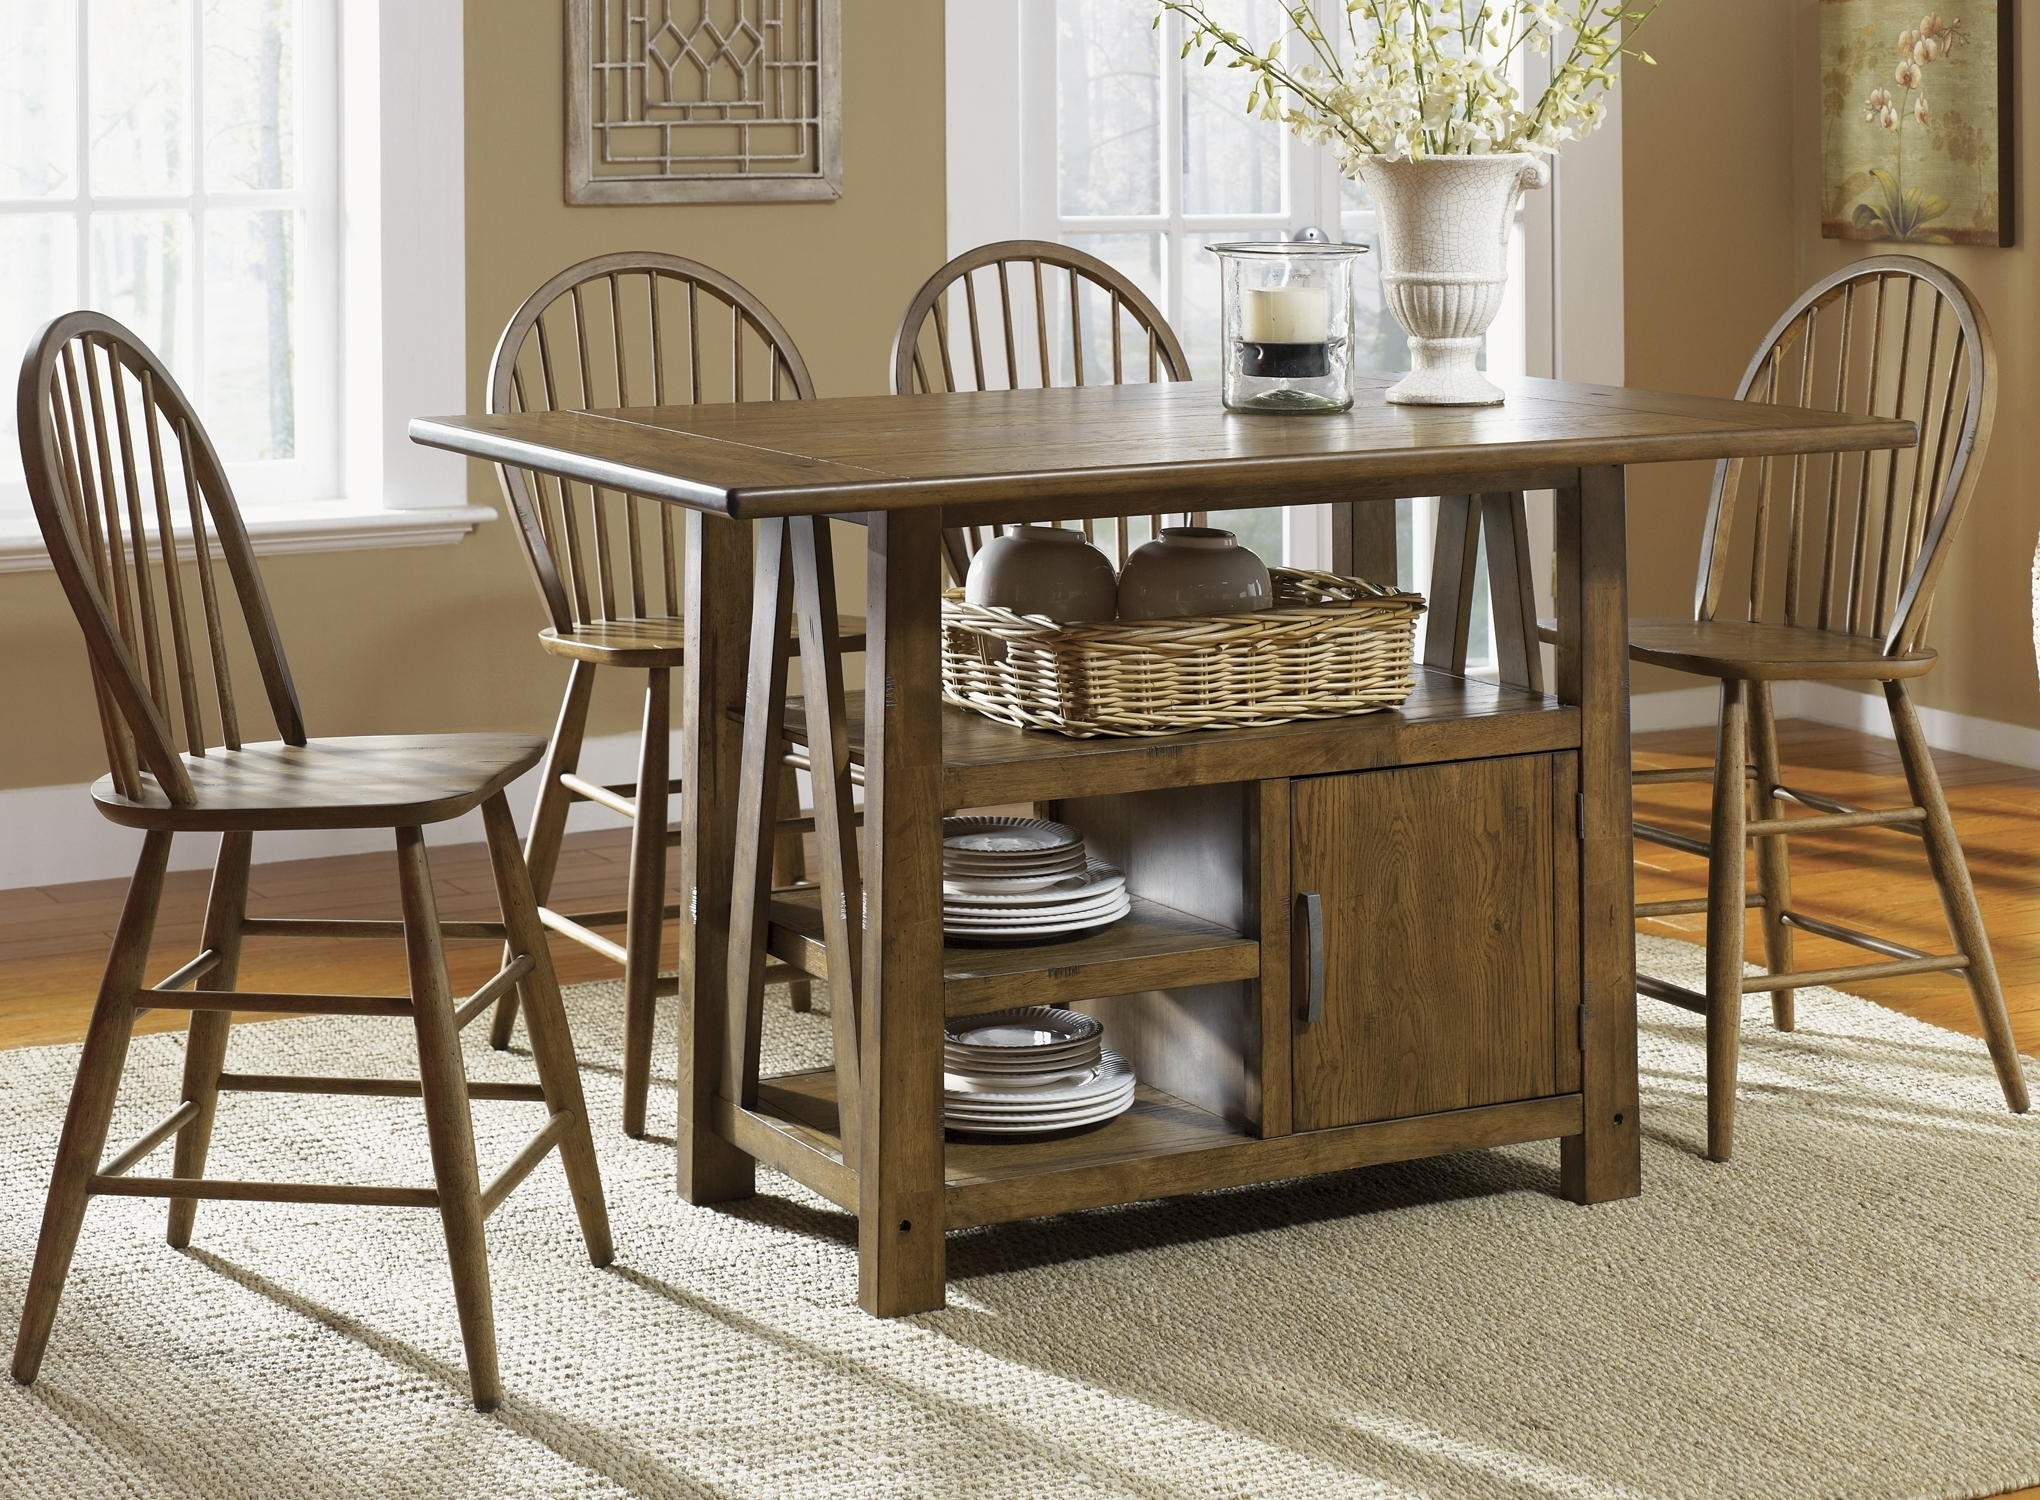 5 Piece Island Pub Table And Windsor Back Counter Chairs Set In Preferred Market 5 Piece Counter Sets (Gallery 4 of 25)